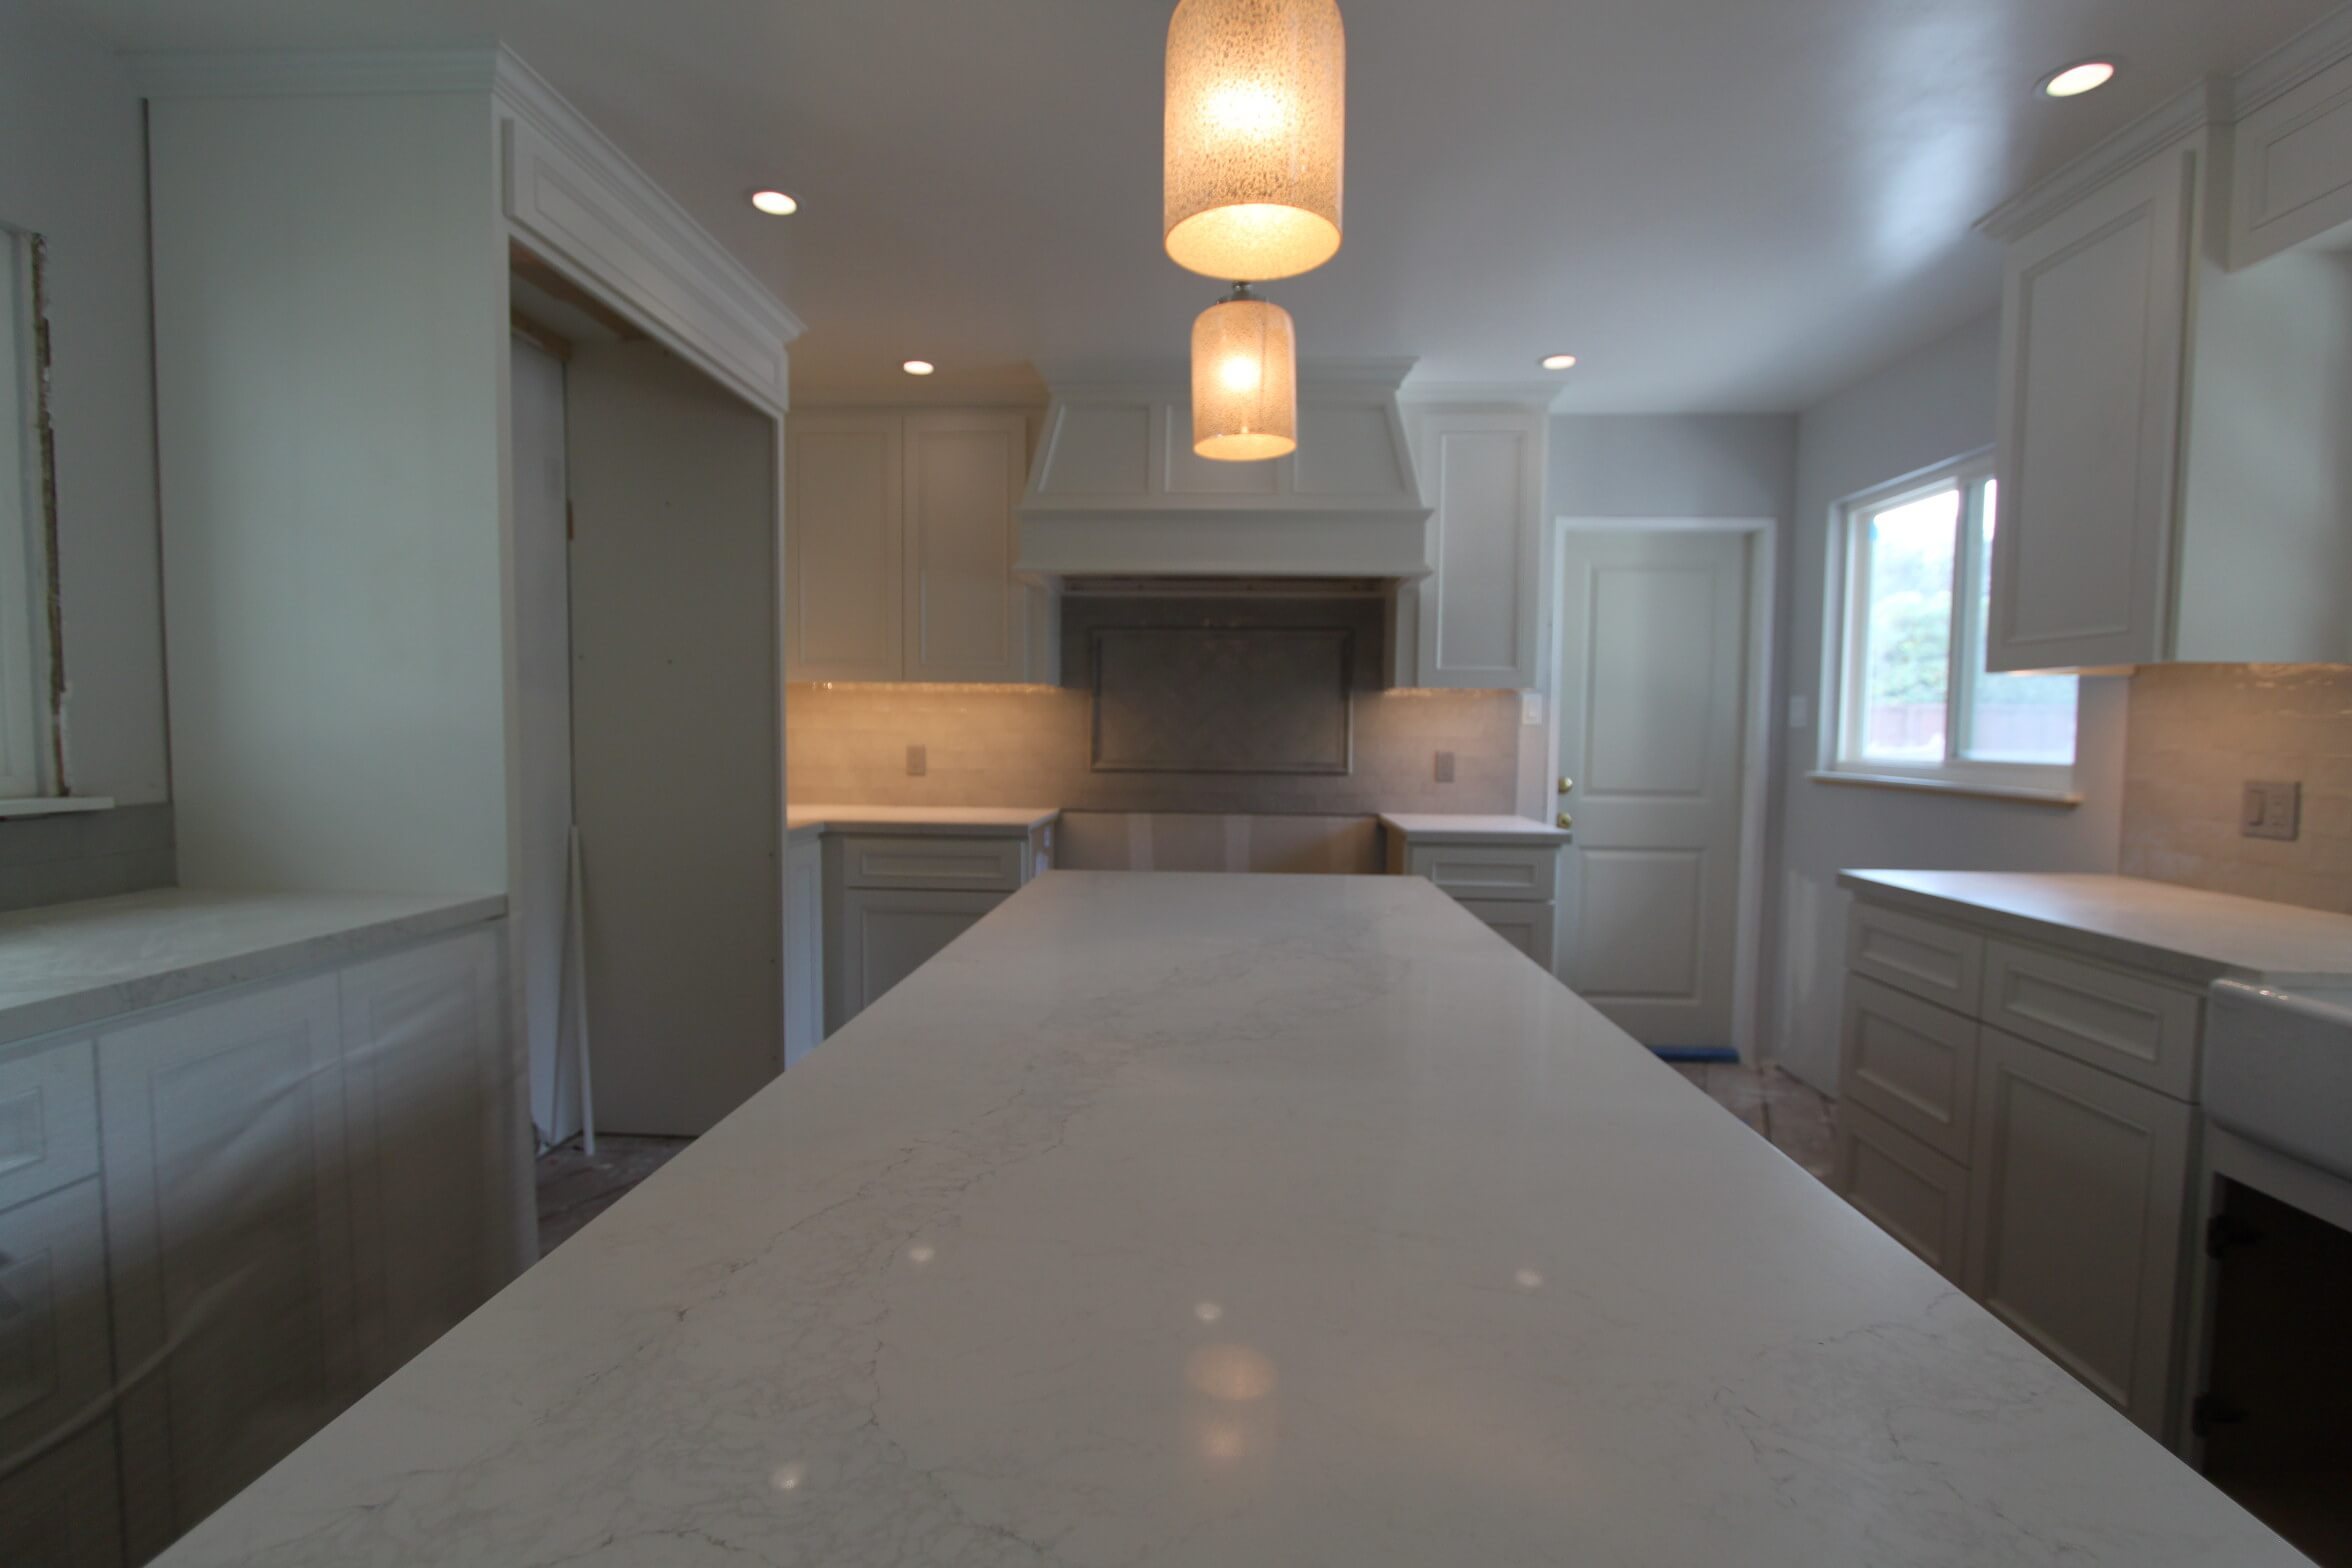 kitchen-countertops.jpg